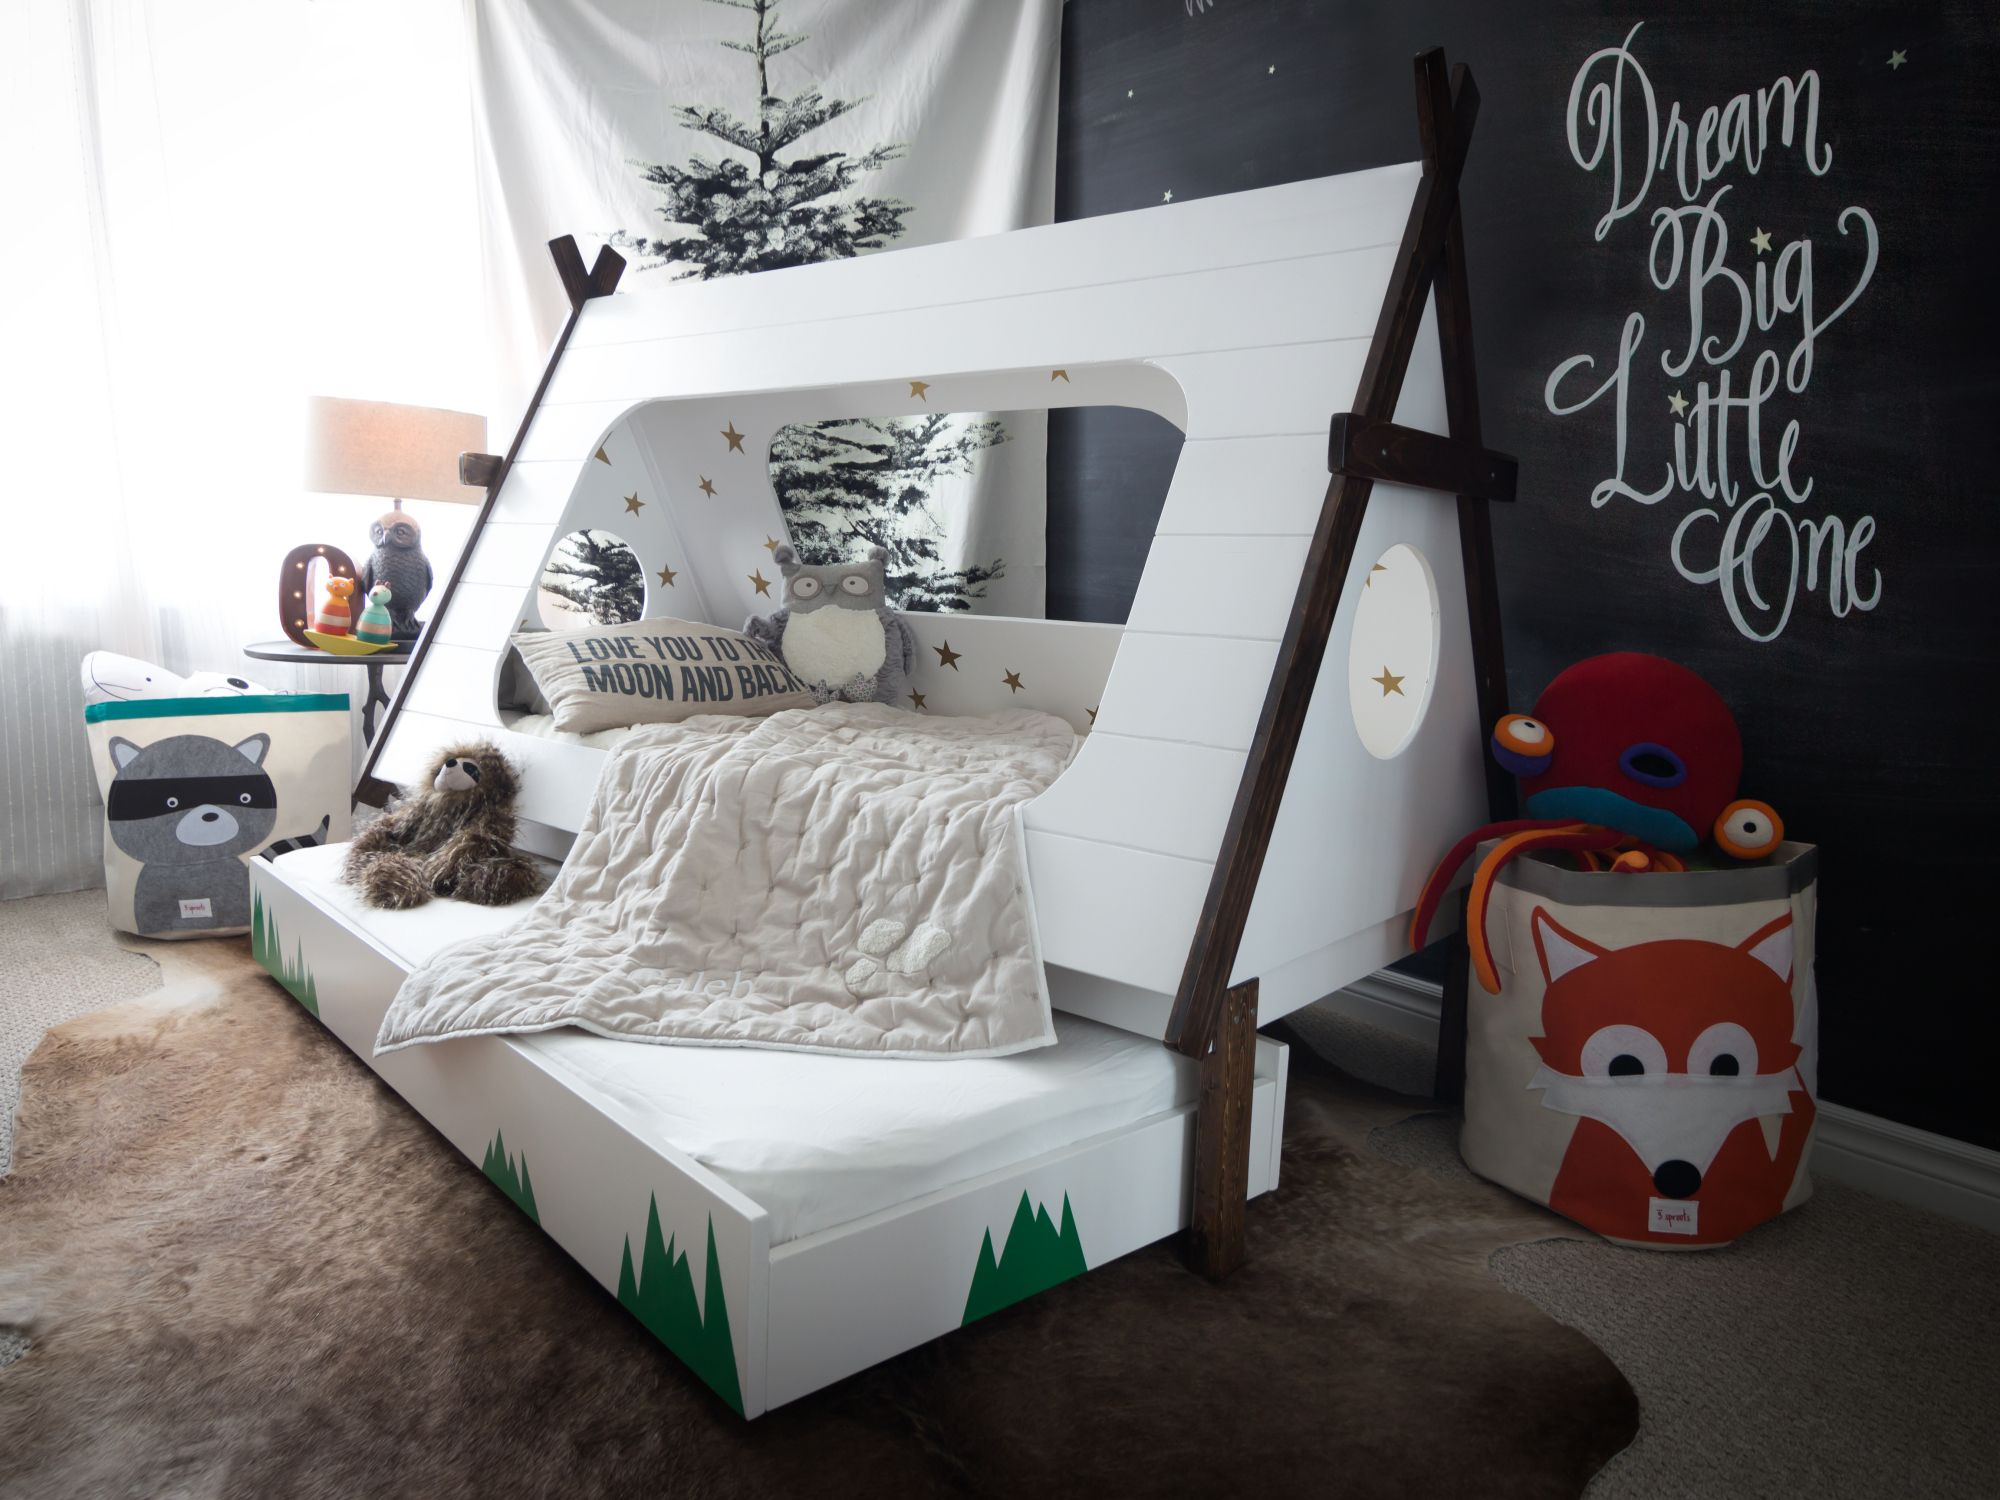 trundlebed - Kids Trundle Beds